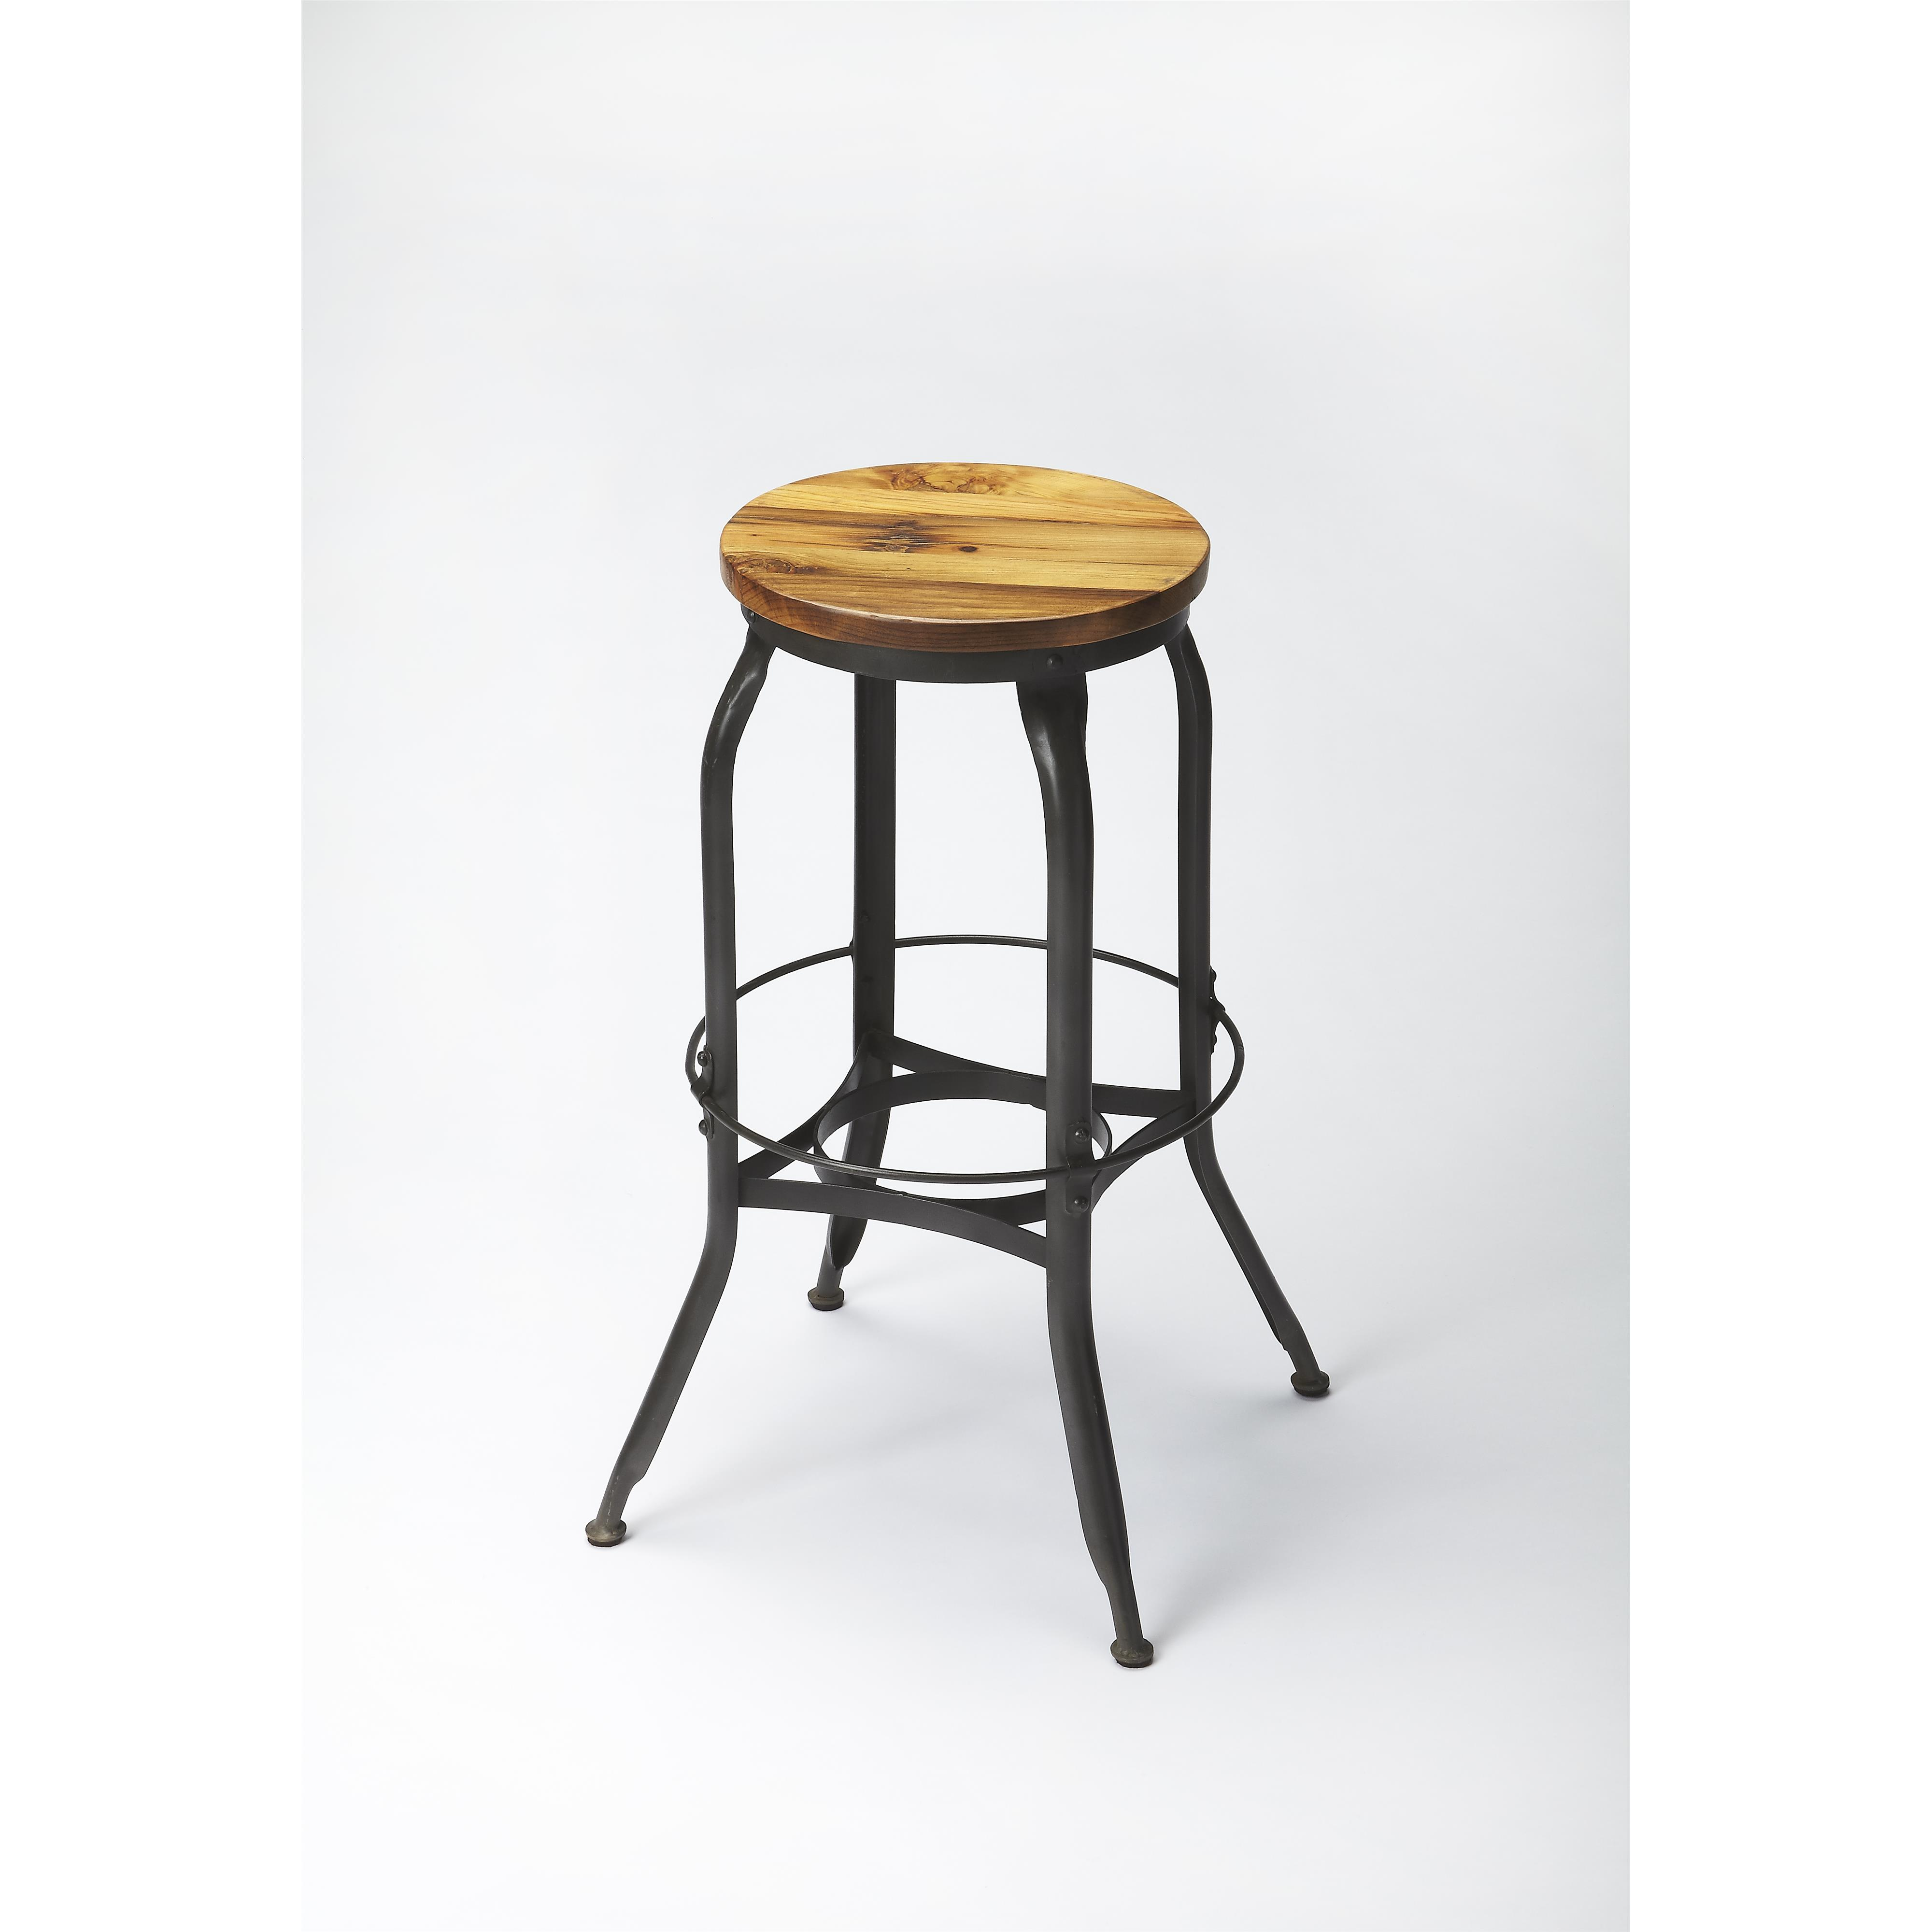 Butler Specialty Company Industrial Chic Bar Stool - Item Number: 3548330